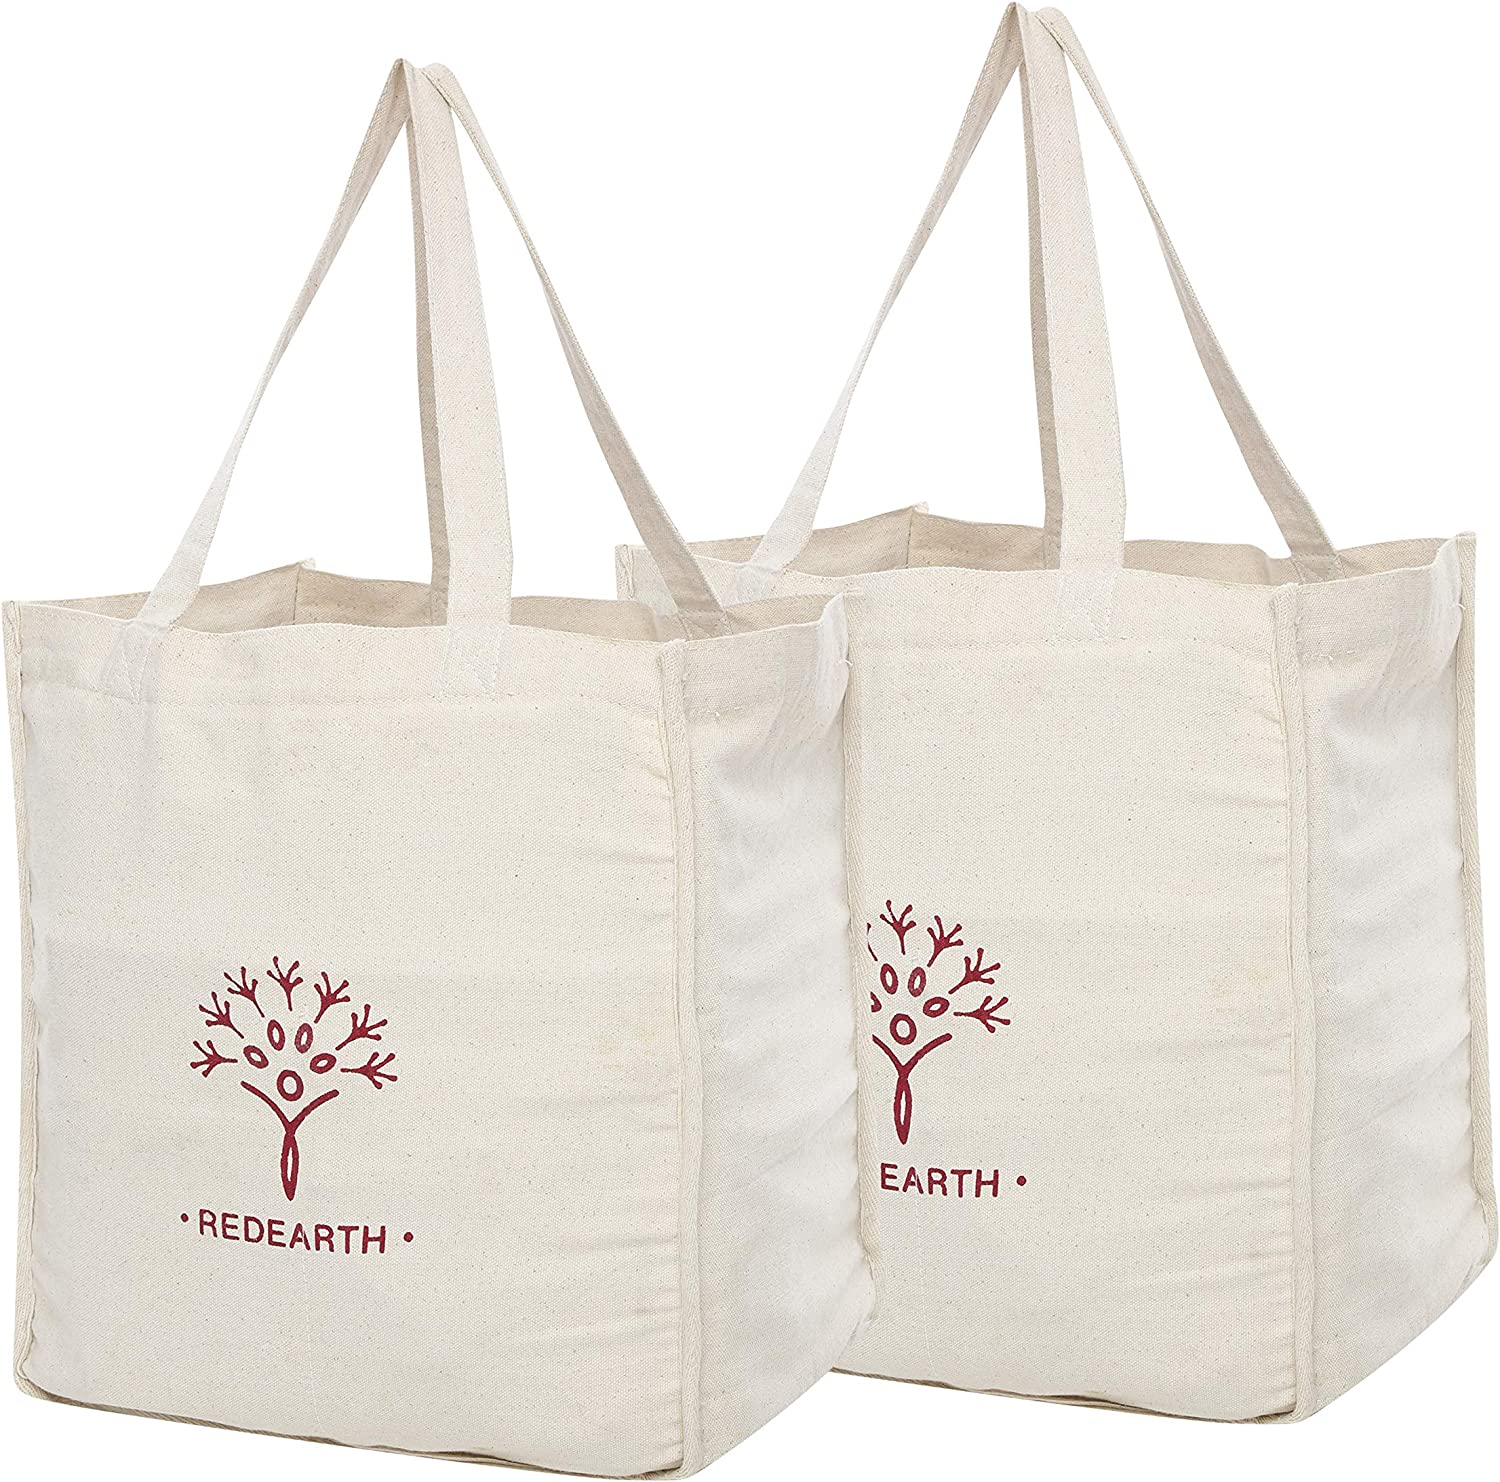 REDEARTH Reusable Heavy Duty Canvas Grocery Shopping Bag -Pre Shrunk 100% Natural Cotton Eco Friendly Extra Large Foldable Tote With Handles and Bottle Sleeve Compartment (15x13x8